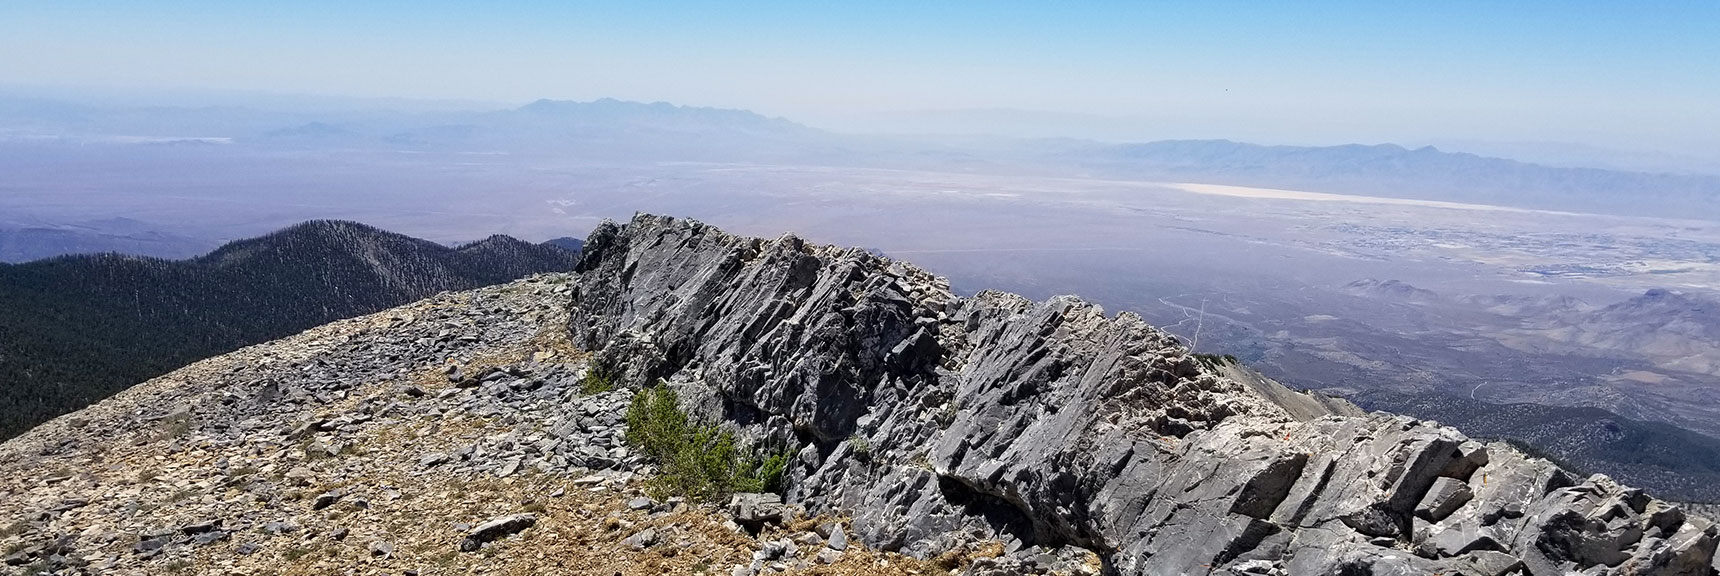 Southern View from Kyle Canyon Summit